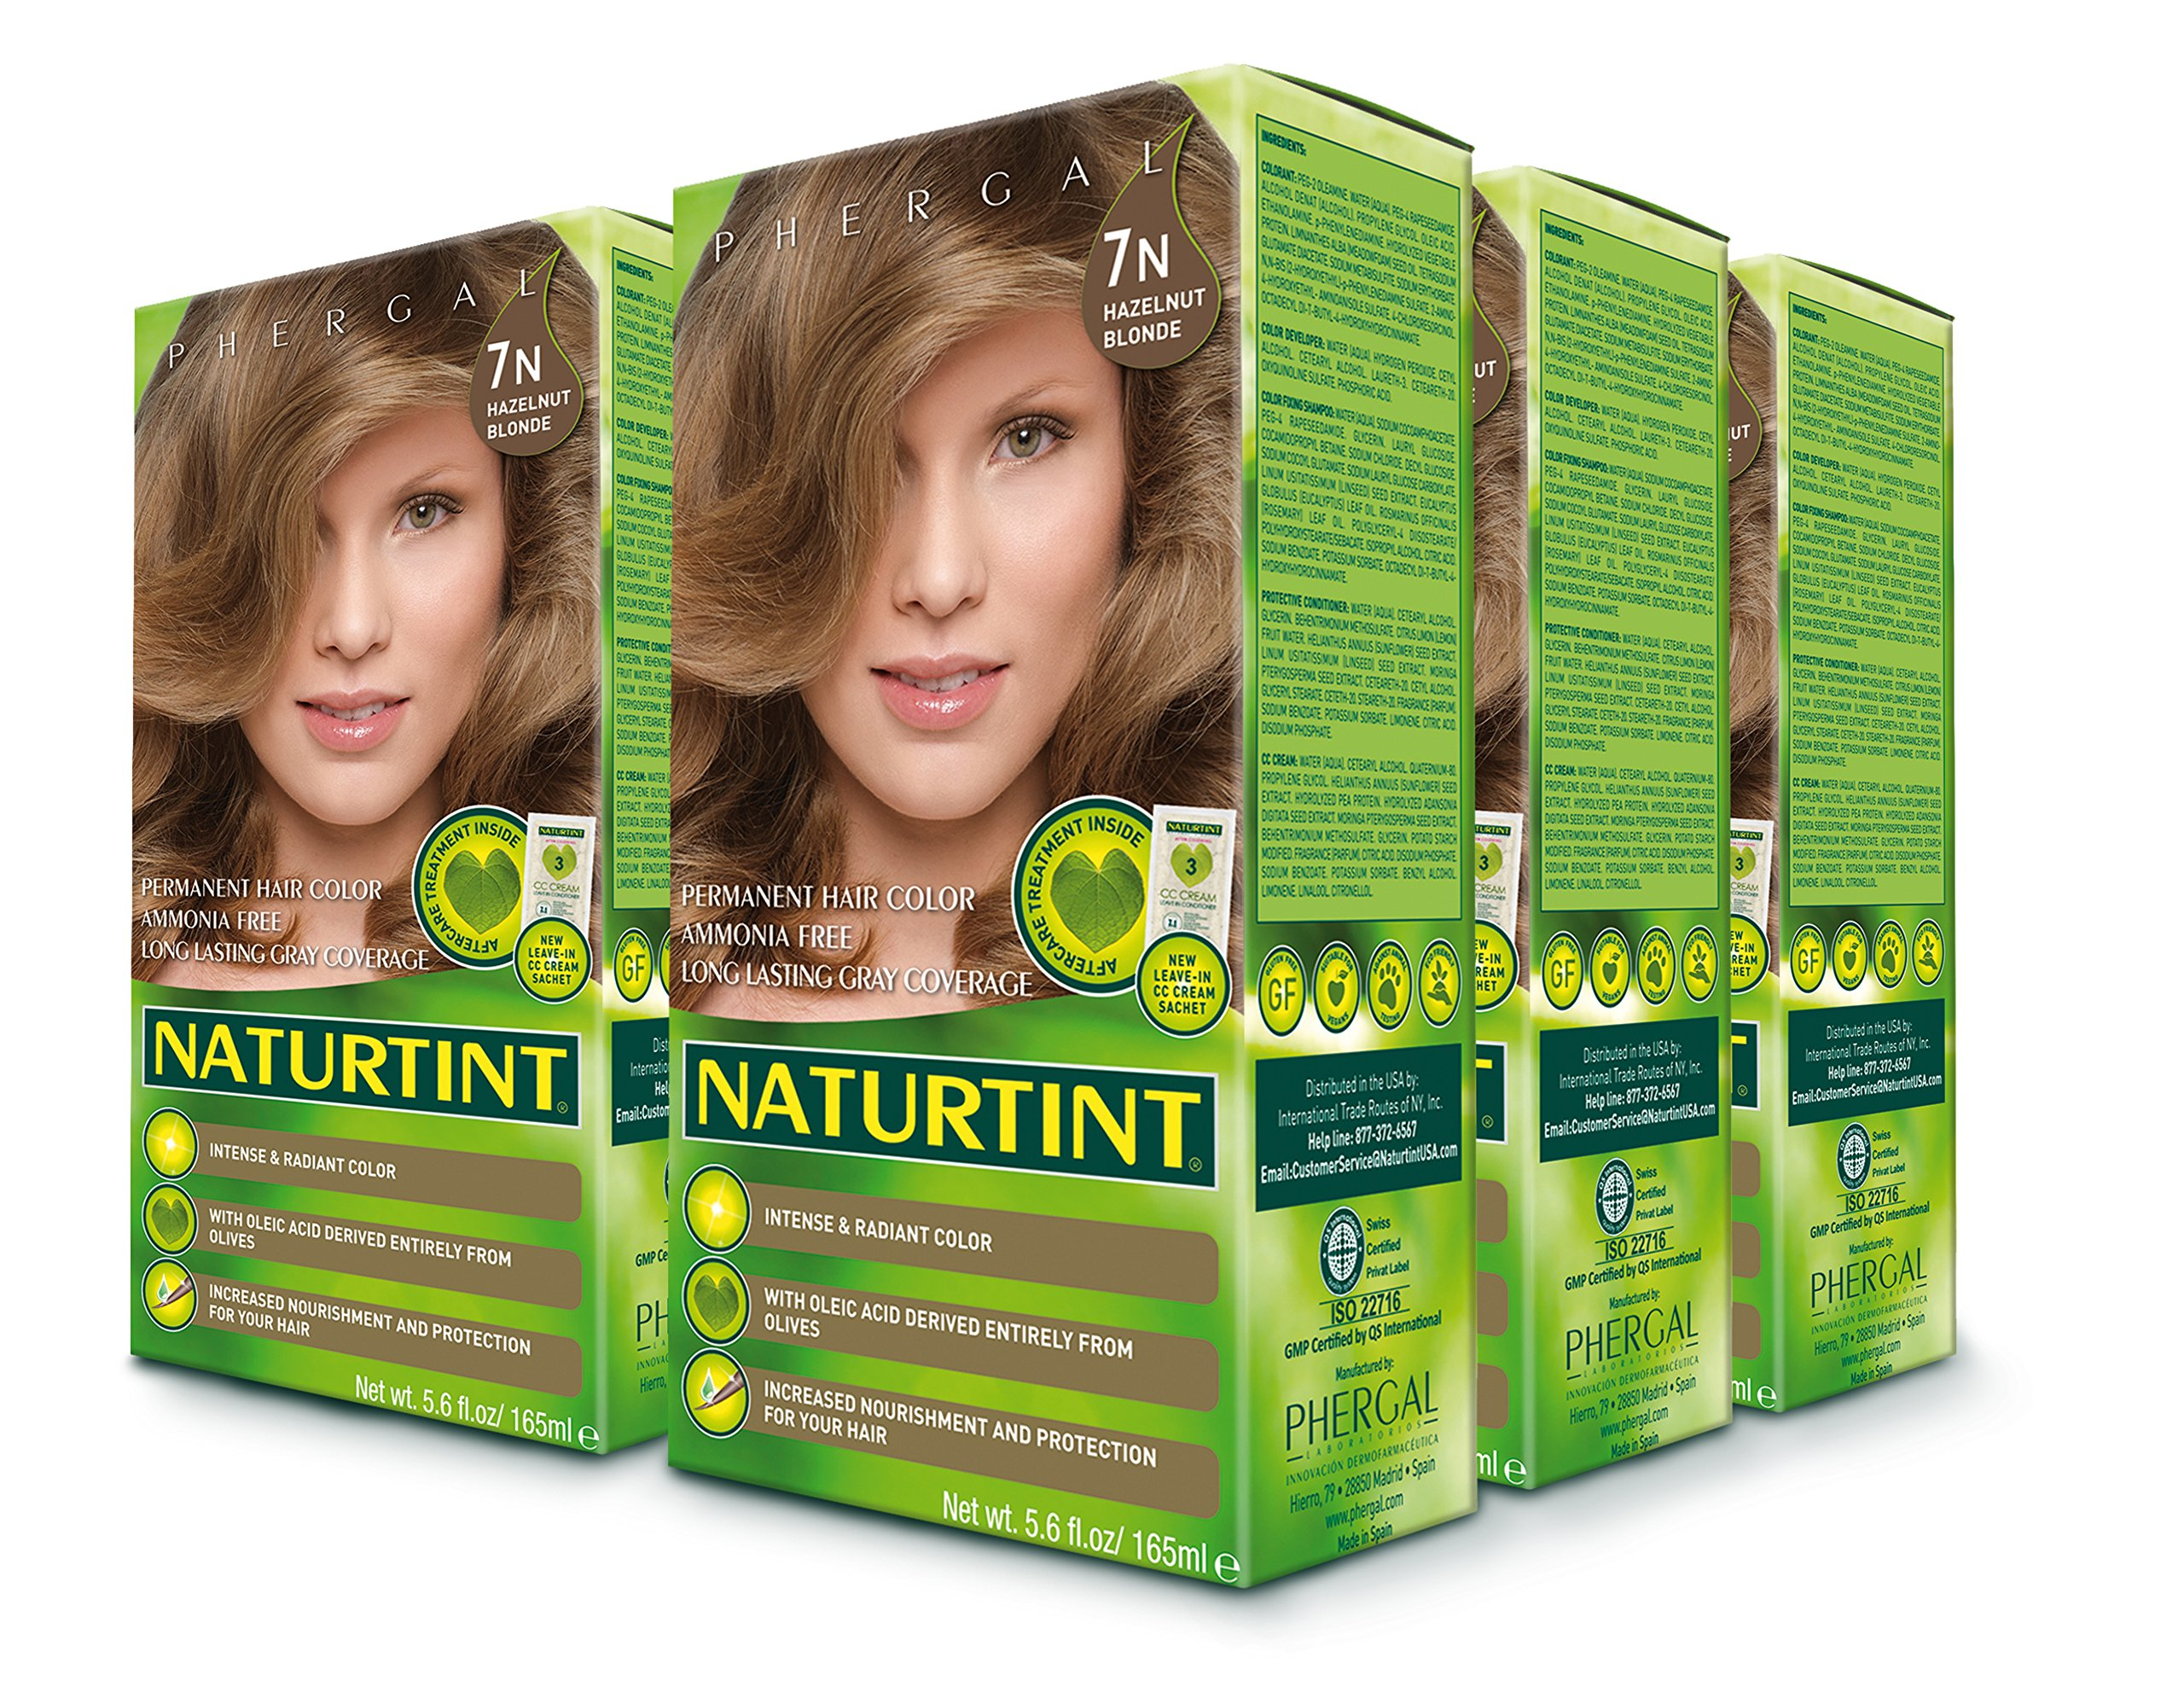 Naturtint Permanent Hair Color - 7N Hazelnut Blonde, 5.28 fl oz (6-pack)